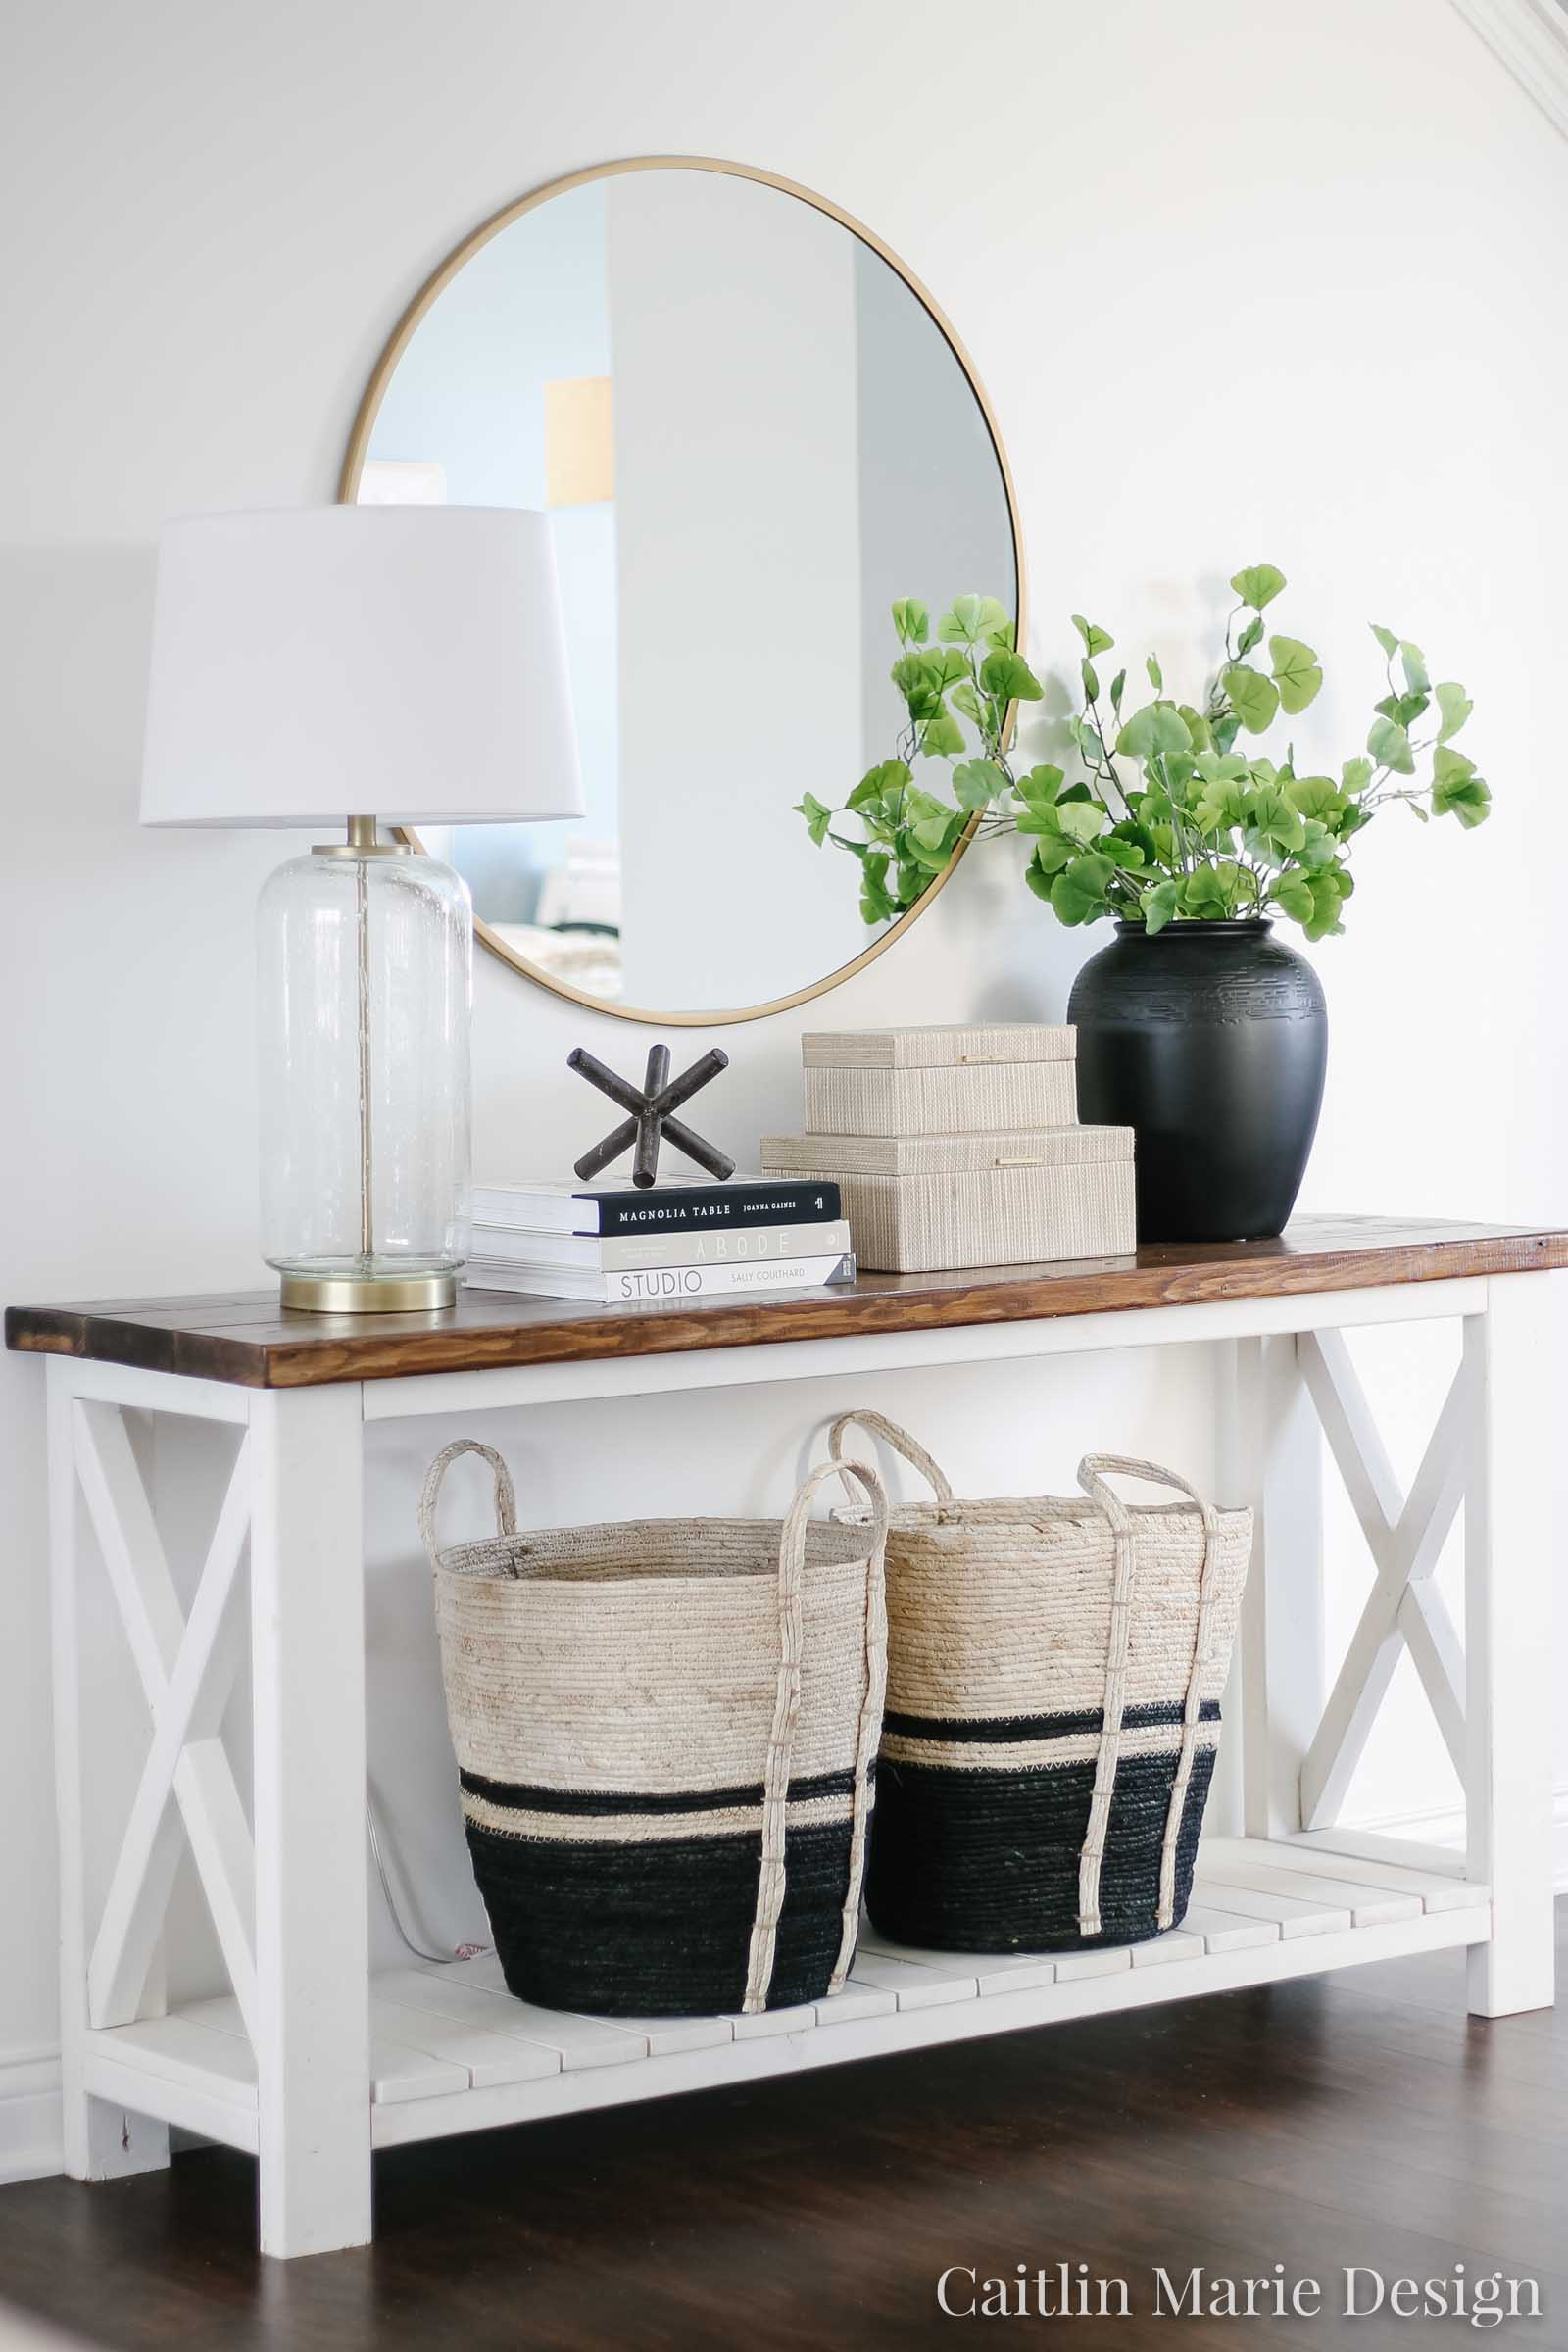 Entryway Styling Ideas | entry console table decor, round brass mirror, modern traditional decor, modern boho, black vase, large baskets, Ana White rustic x console